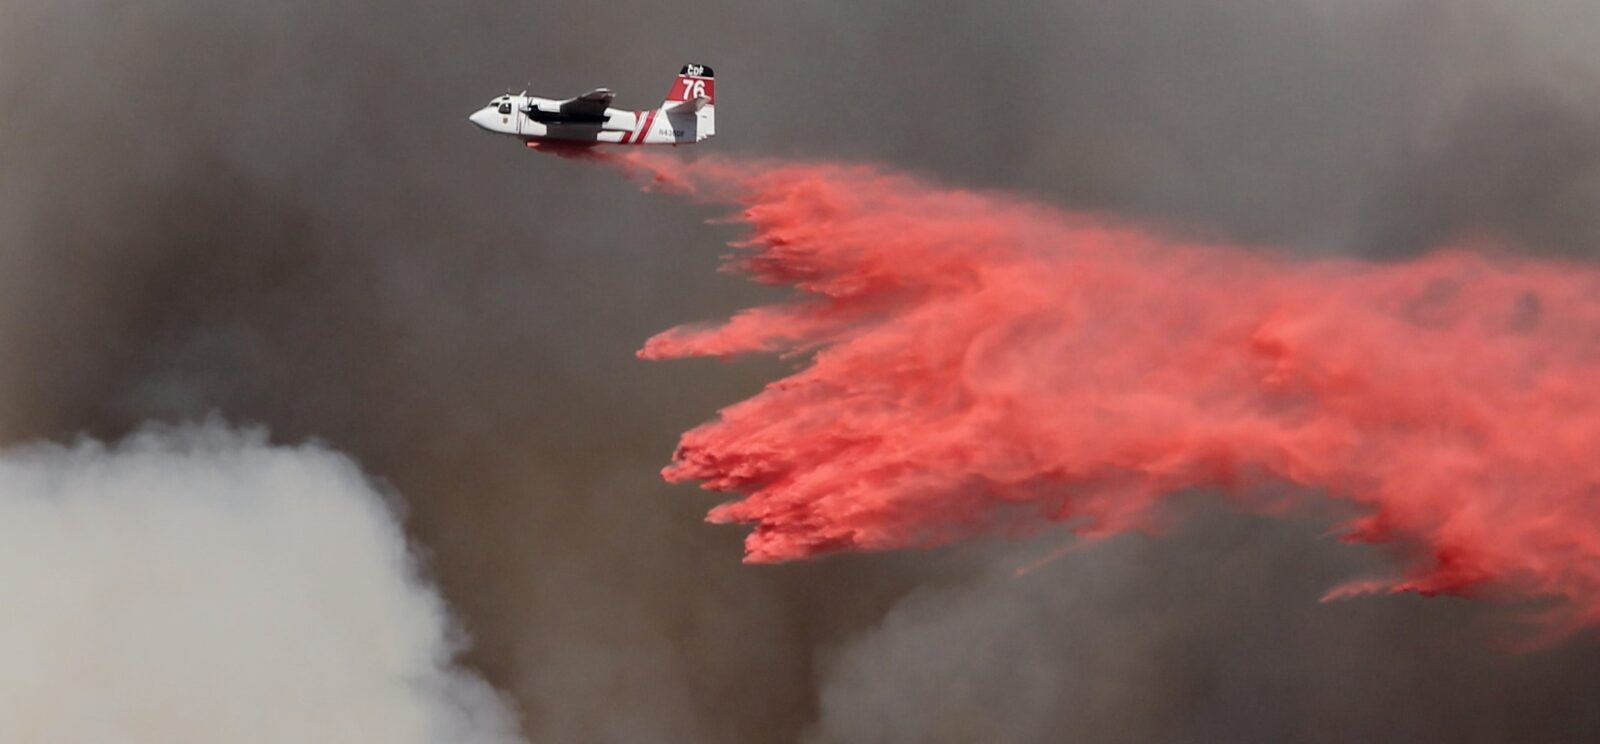 tanker drops fire retardant on wildfires amidst smoke cloud